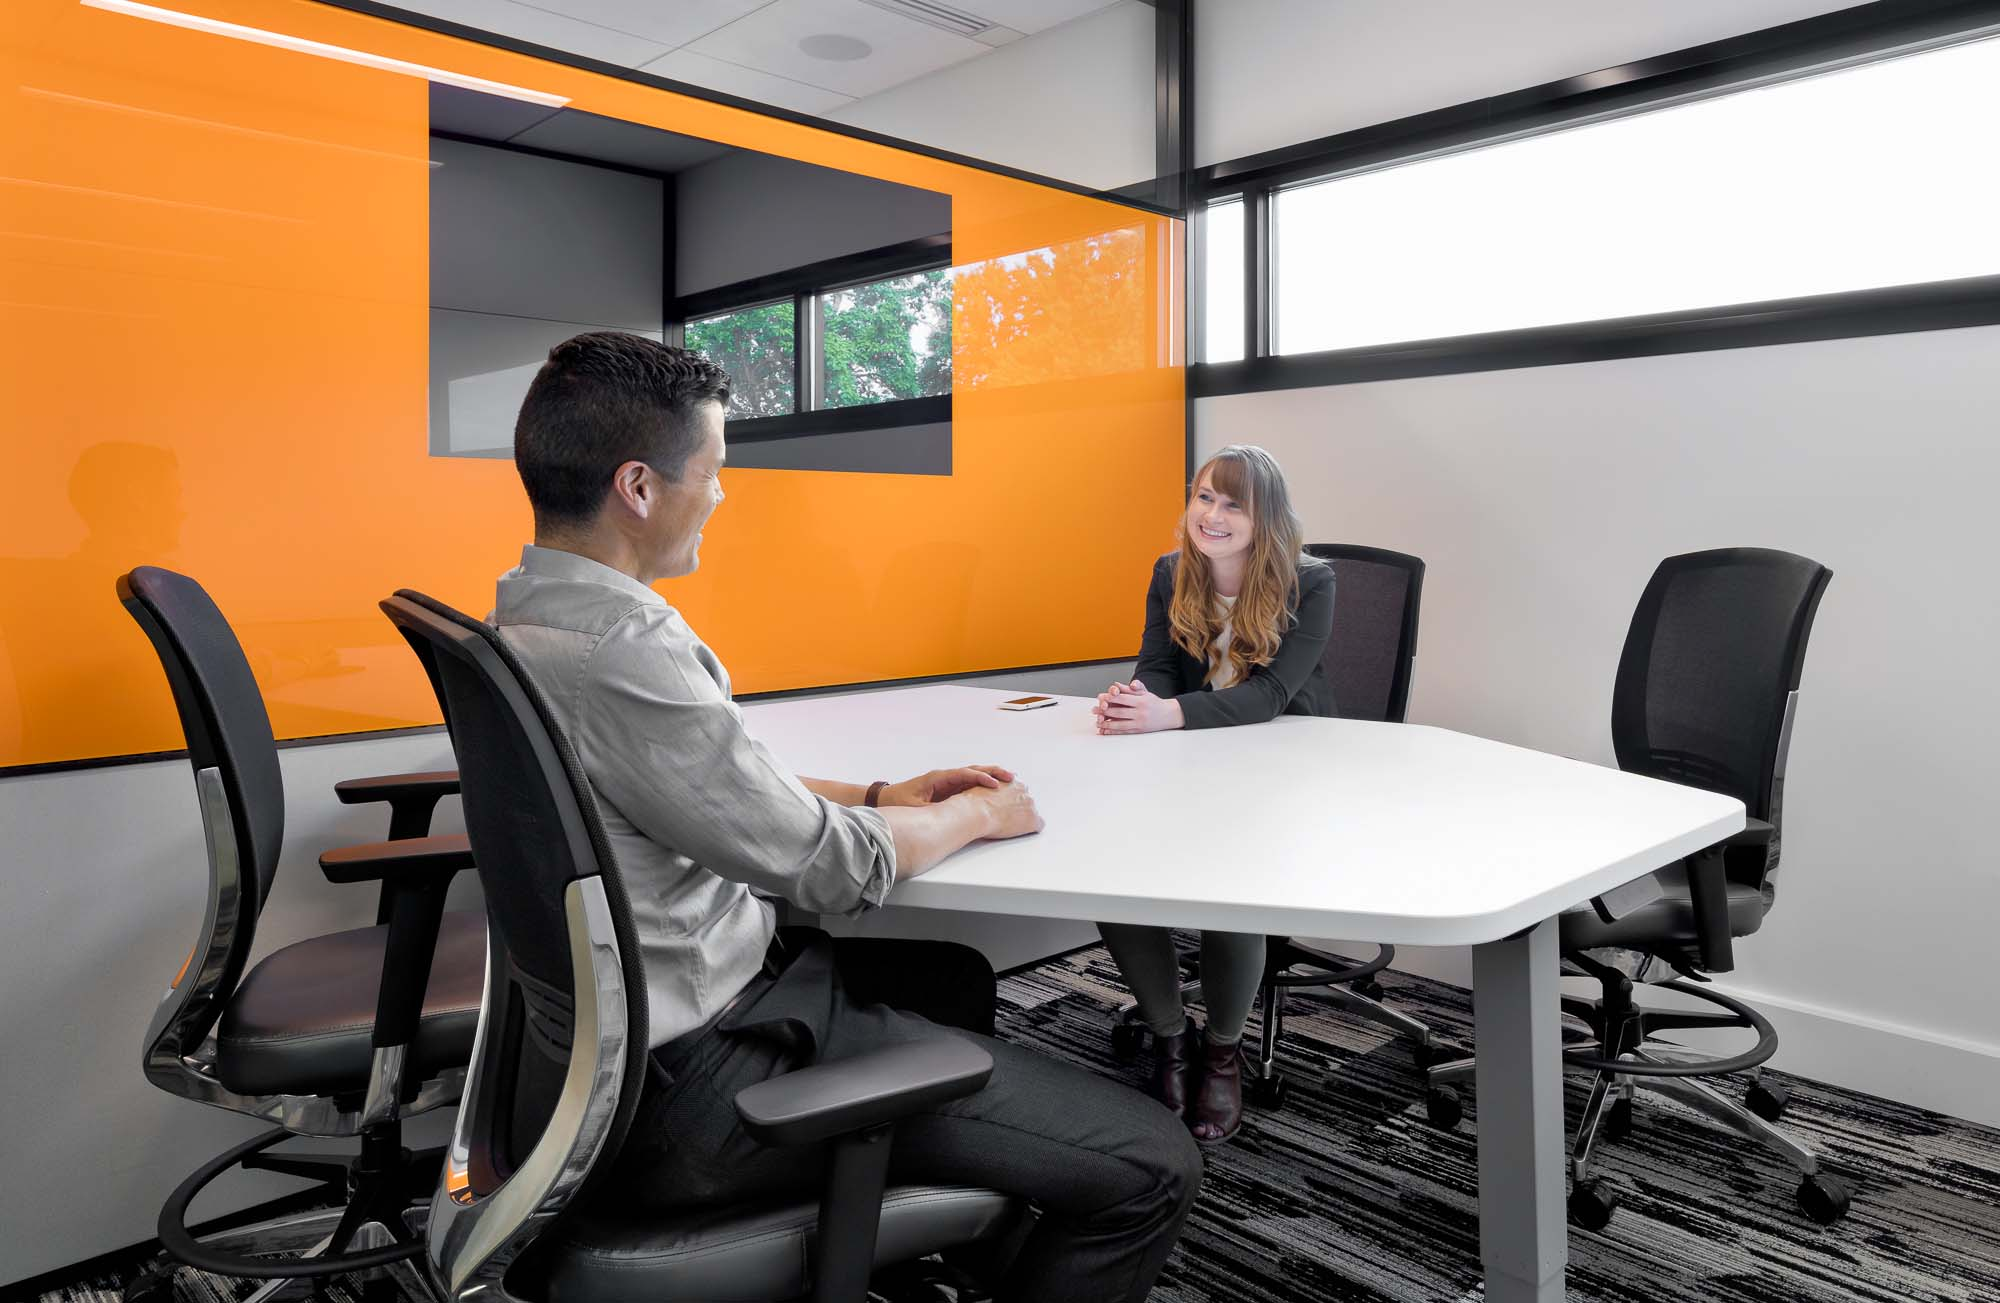 Workplace Consulting - Our experts know how to maximize your square footage to maximize efficiency and productivity